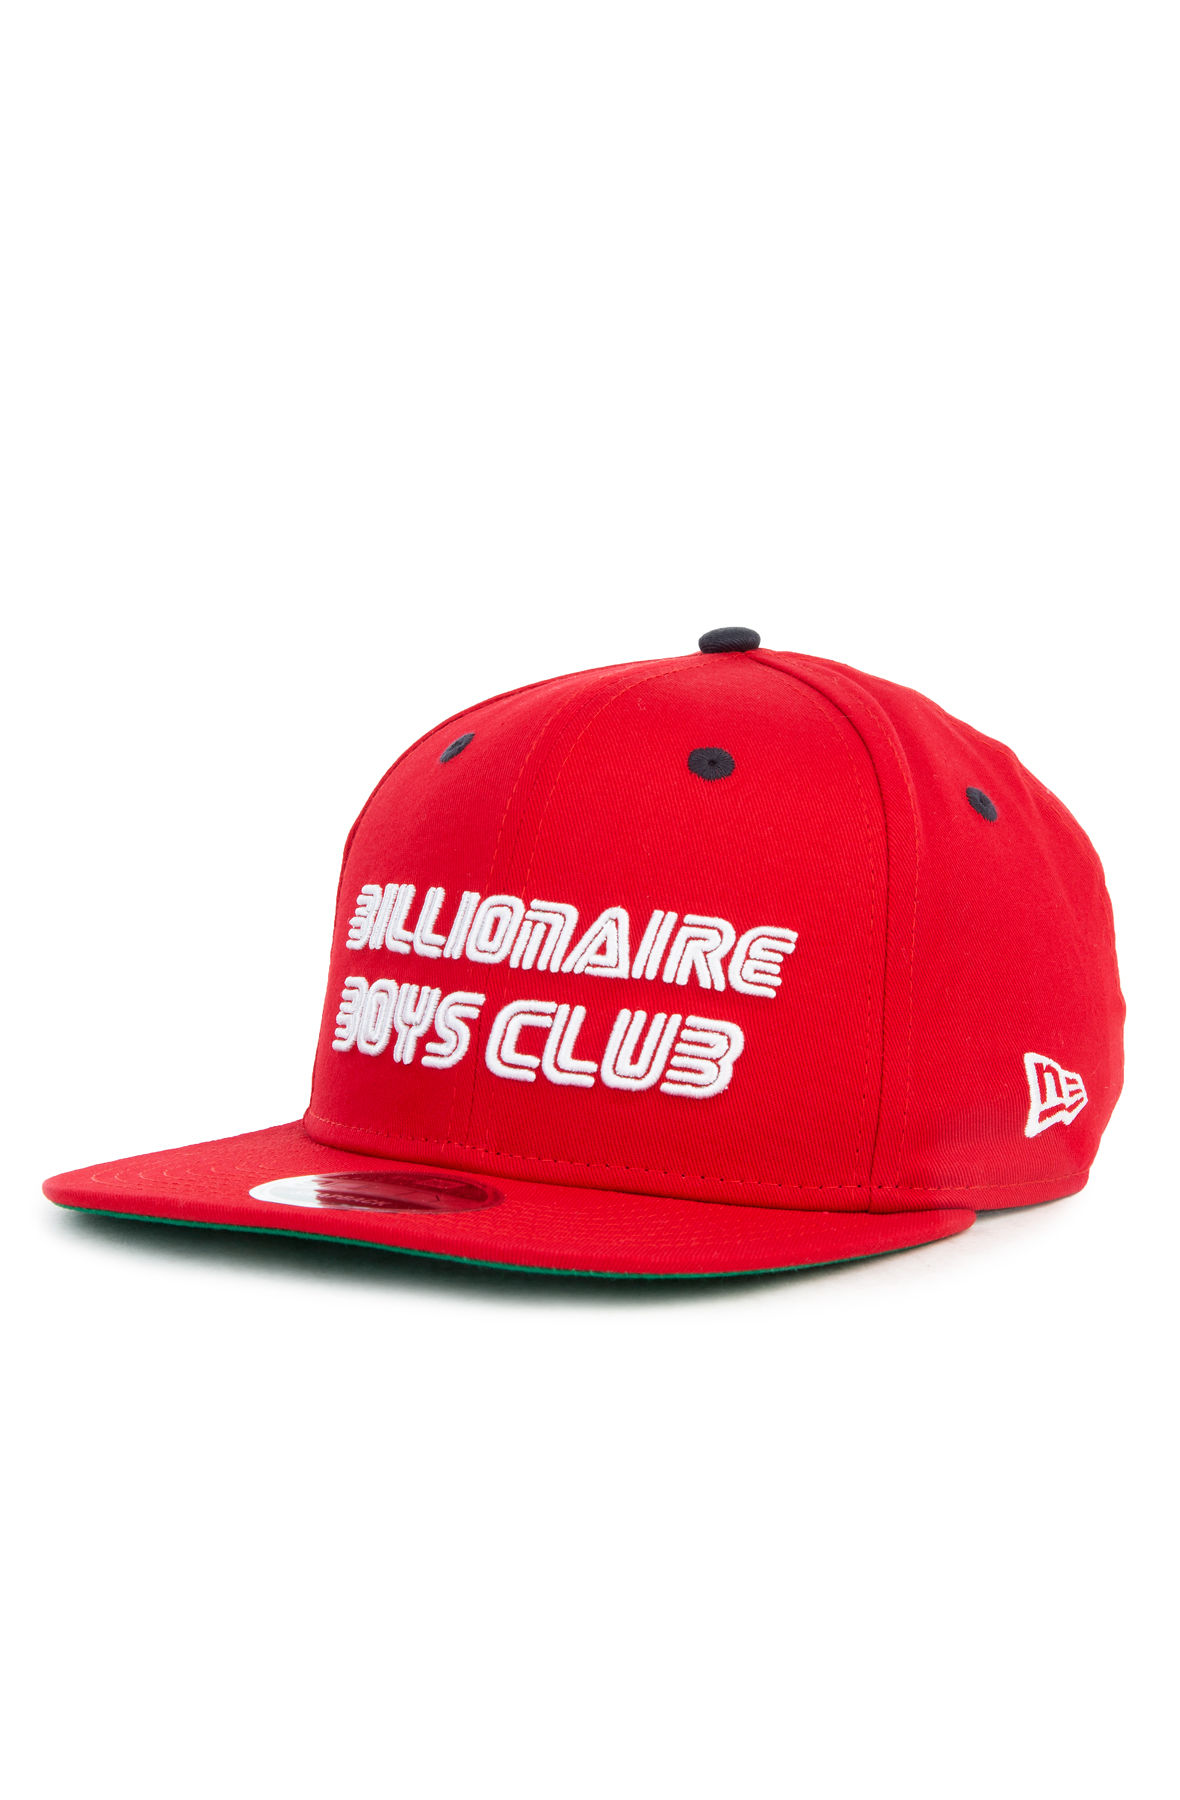 Image of Boys Club Snapback Hat In Red